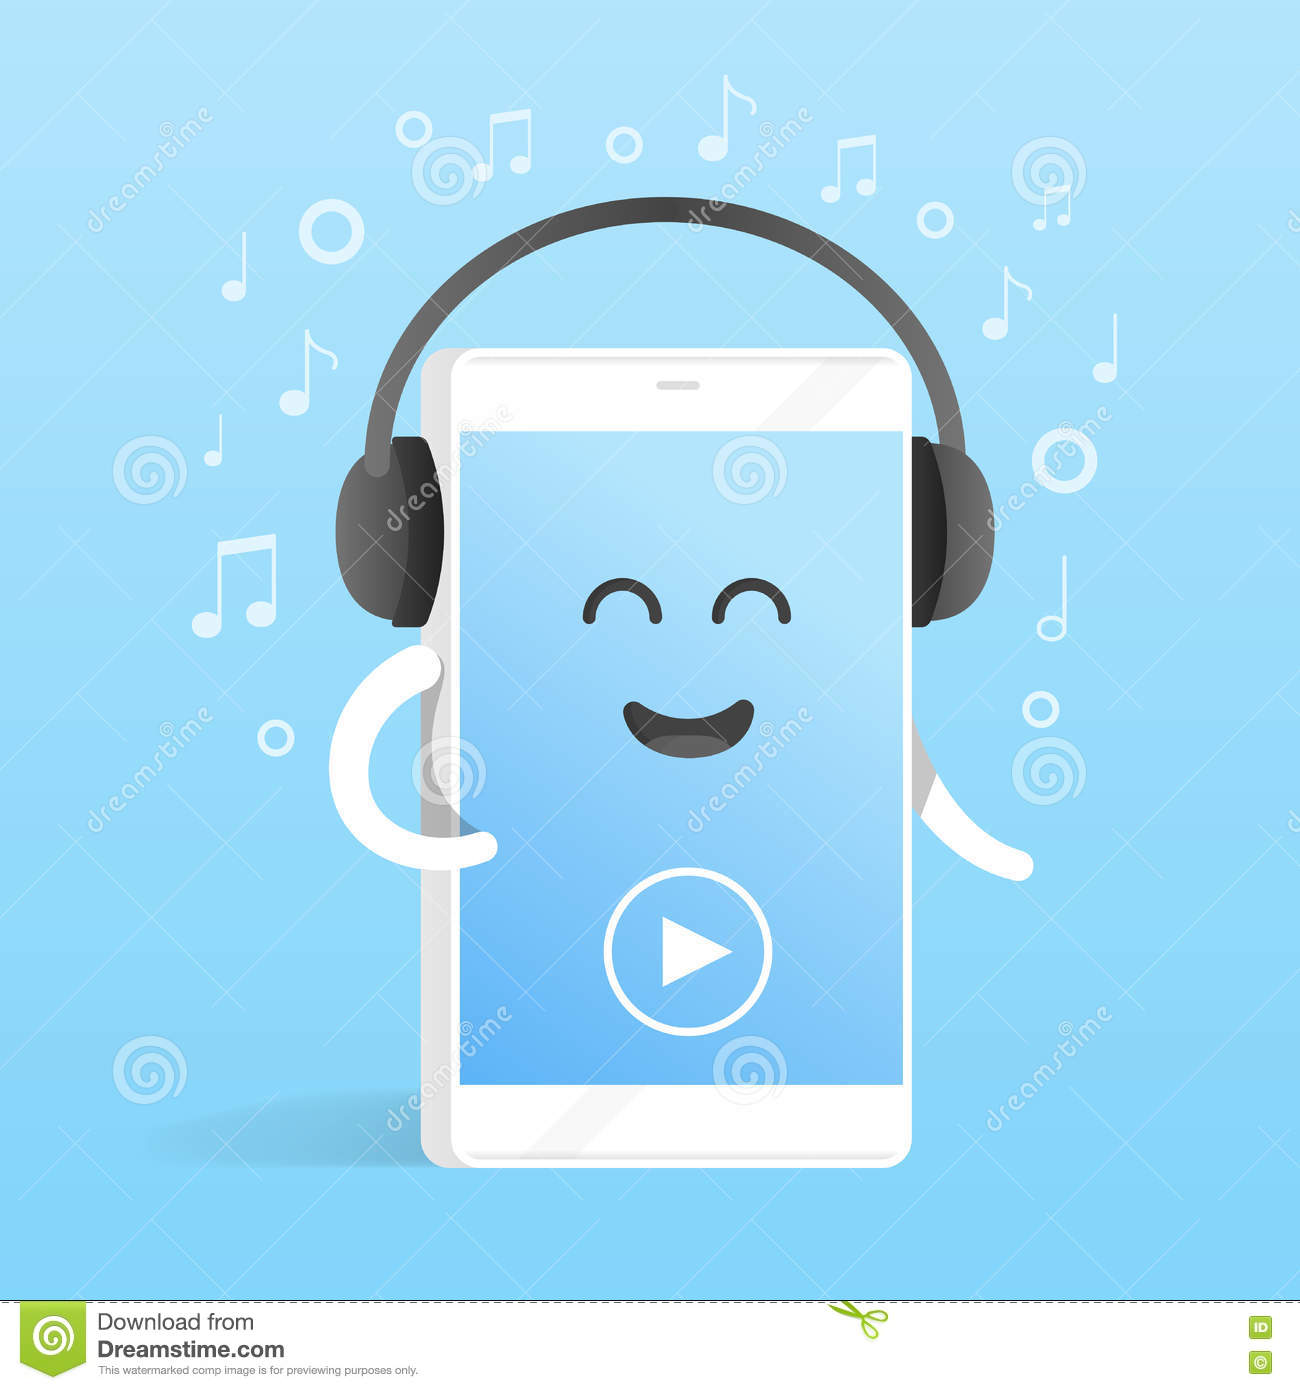 Smartphone Concept Of Listening To Music On Headphones Background Of Notes Cute Cartoon Character Phone With Hands Eyes And Stock Illustration Illustration Of Mascot Drawing 80208530